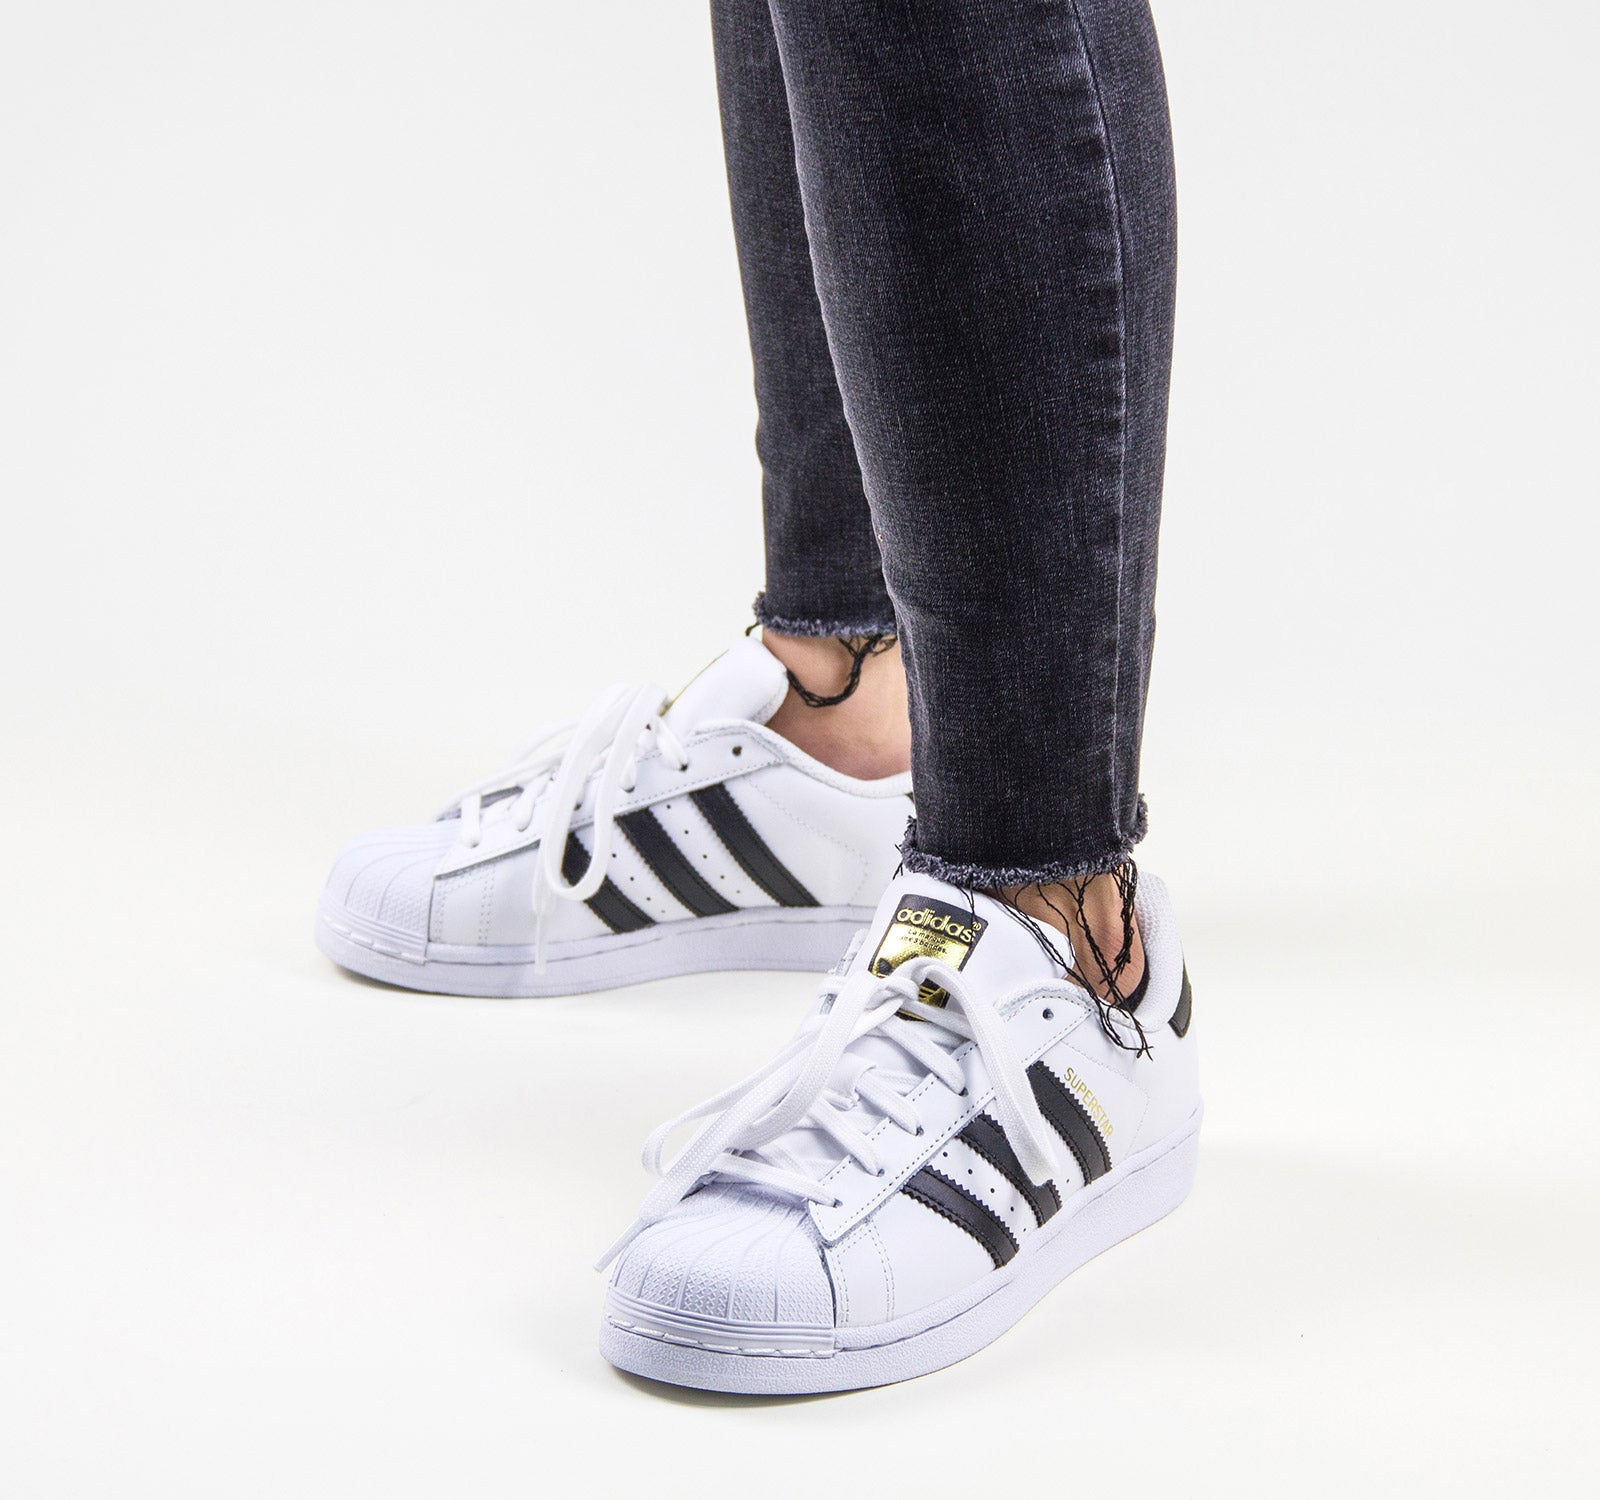 buy online 6eecf 9ea87 ... Adidas Superstar C77124 Sneaker in White and Black - Adidas - On The  EDGE ...